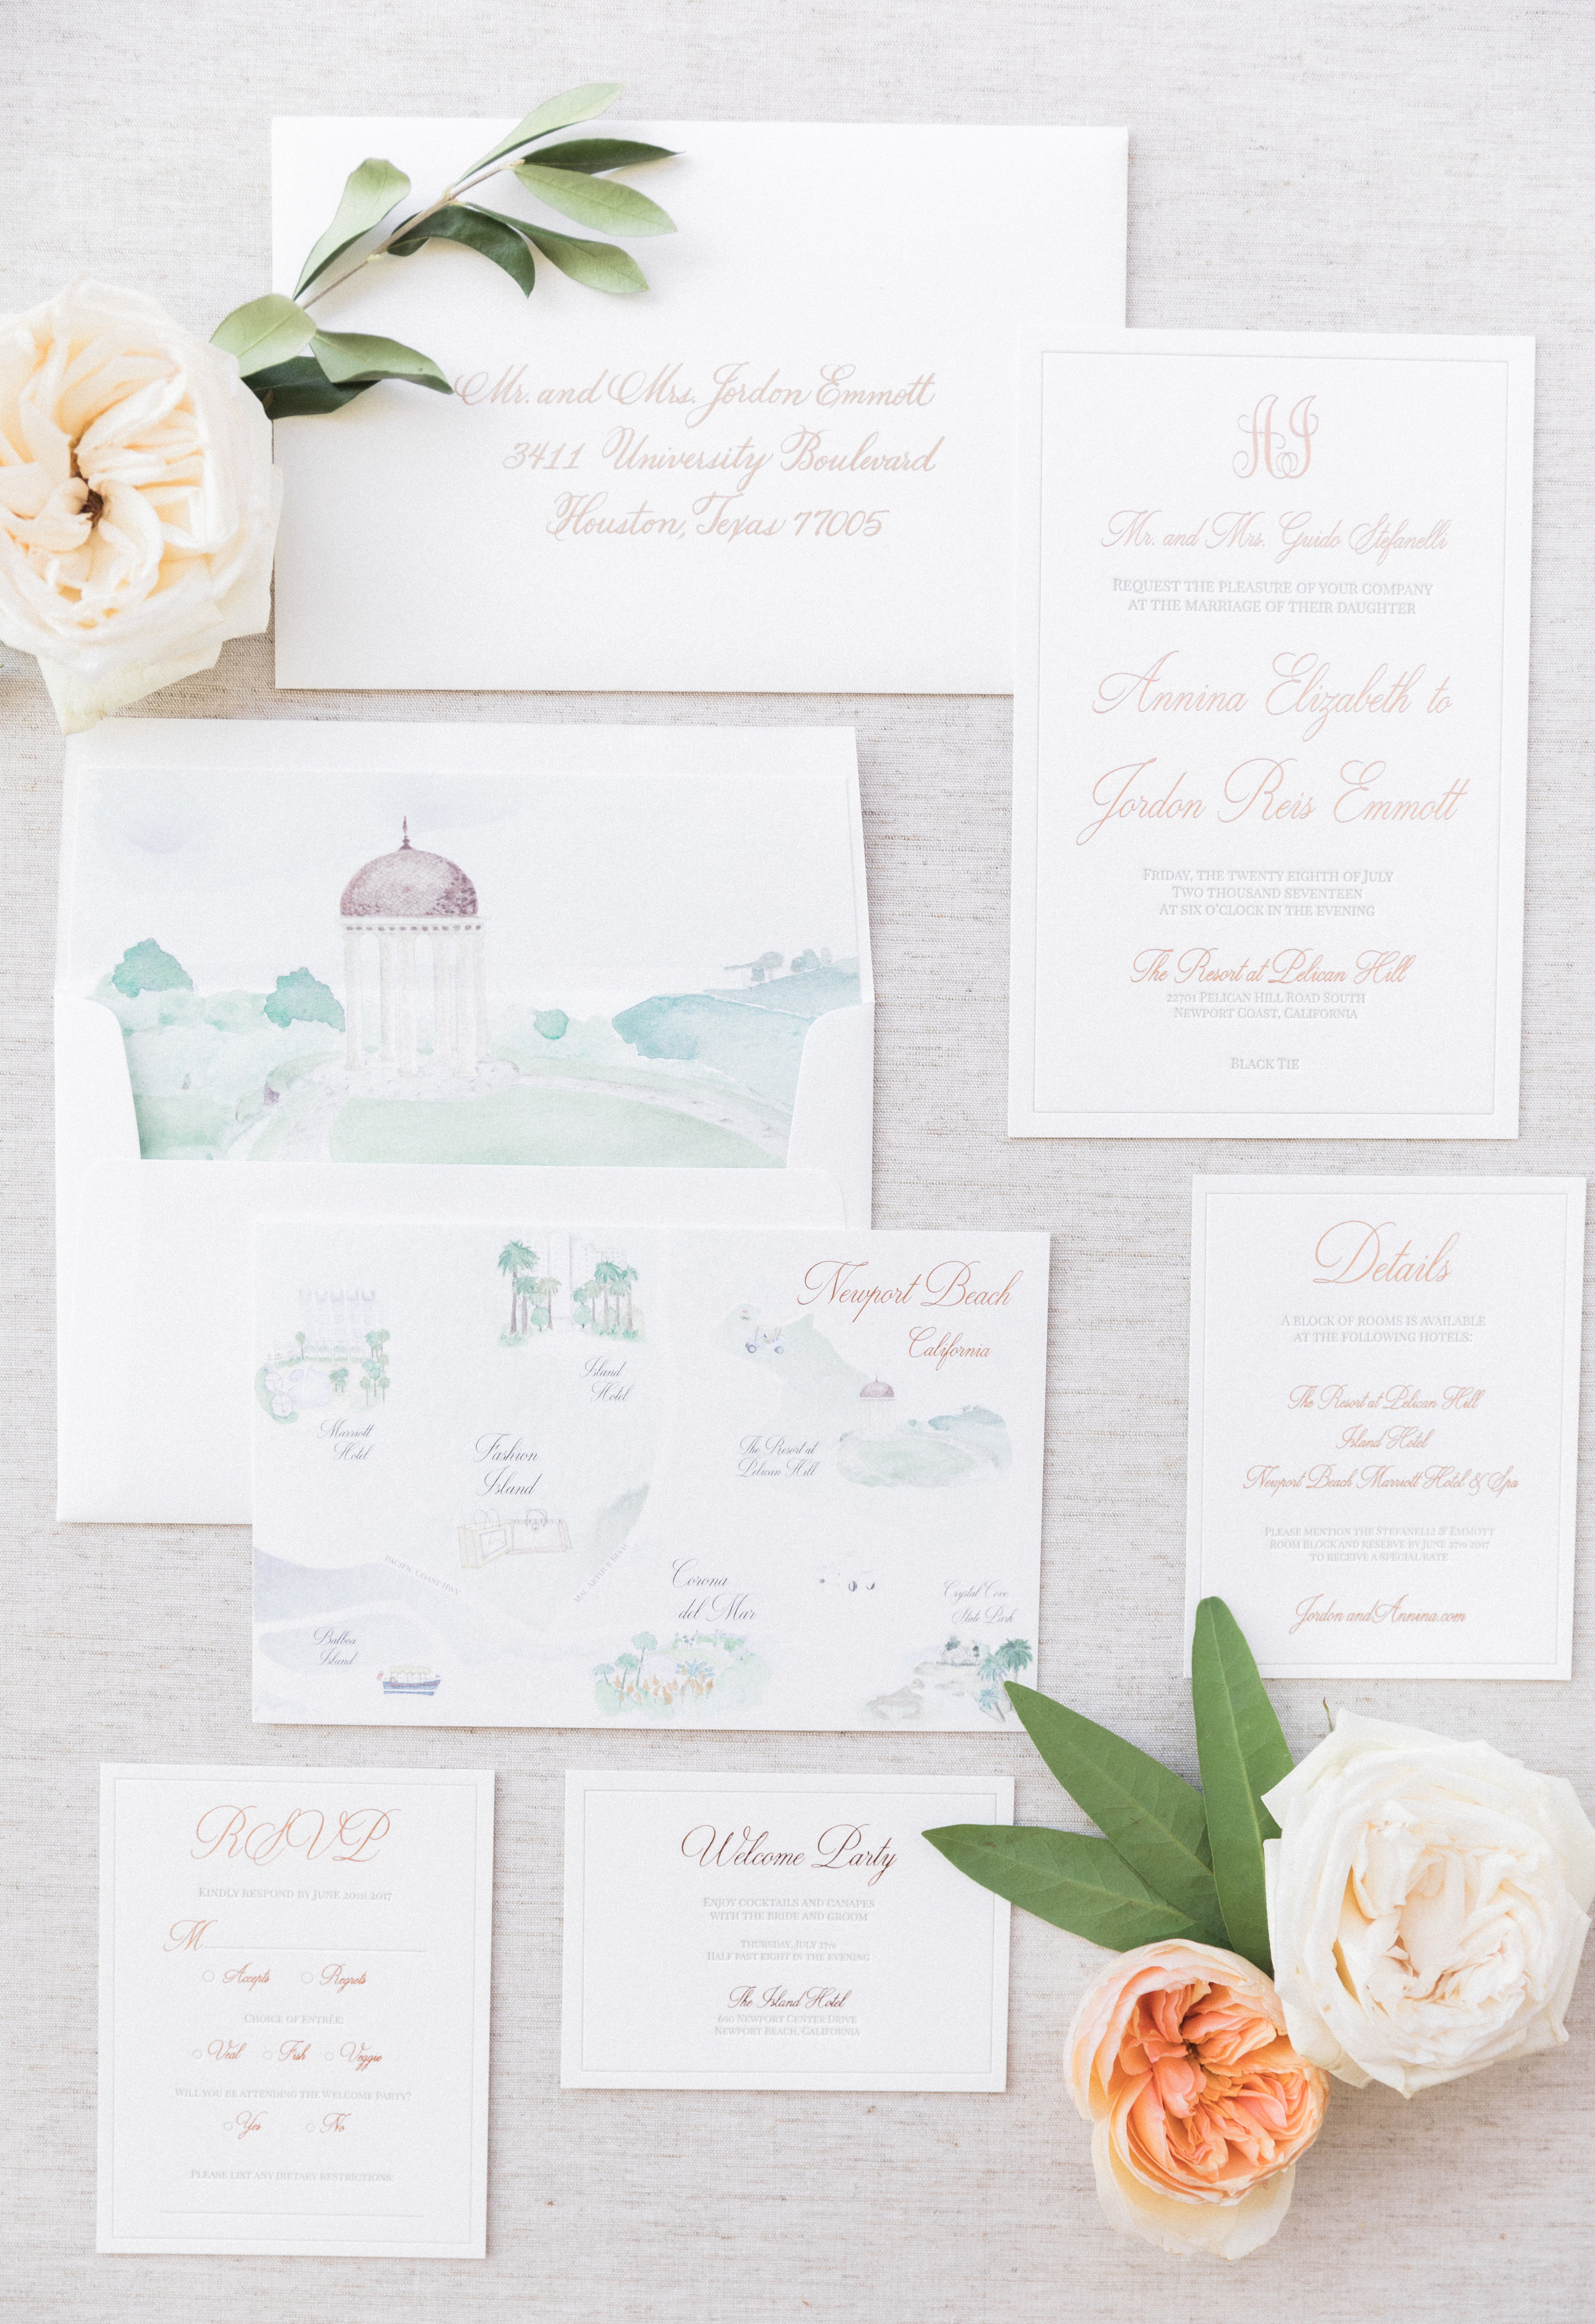 Pelican Hill Wedding Invitation Suite by Vie de Vic Fine Illustration & Stationery | Photo: Brandon Kidd Photo